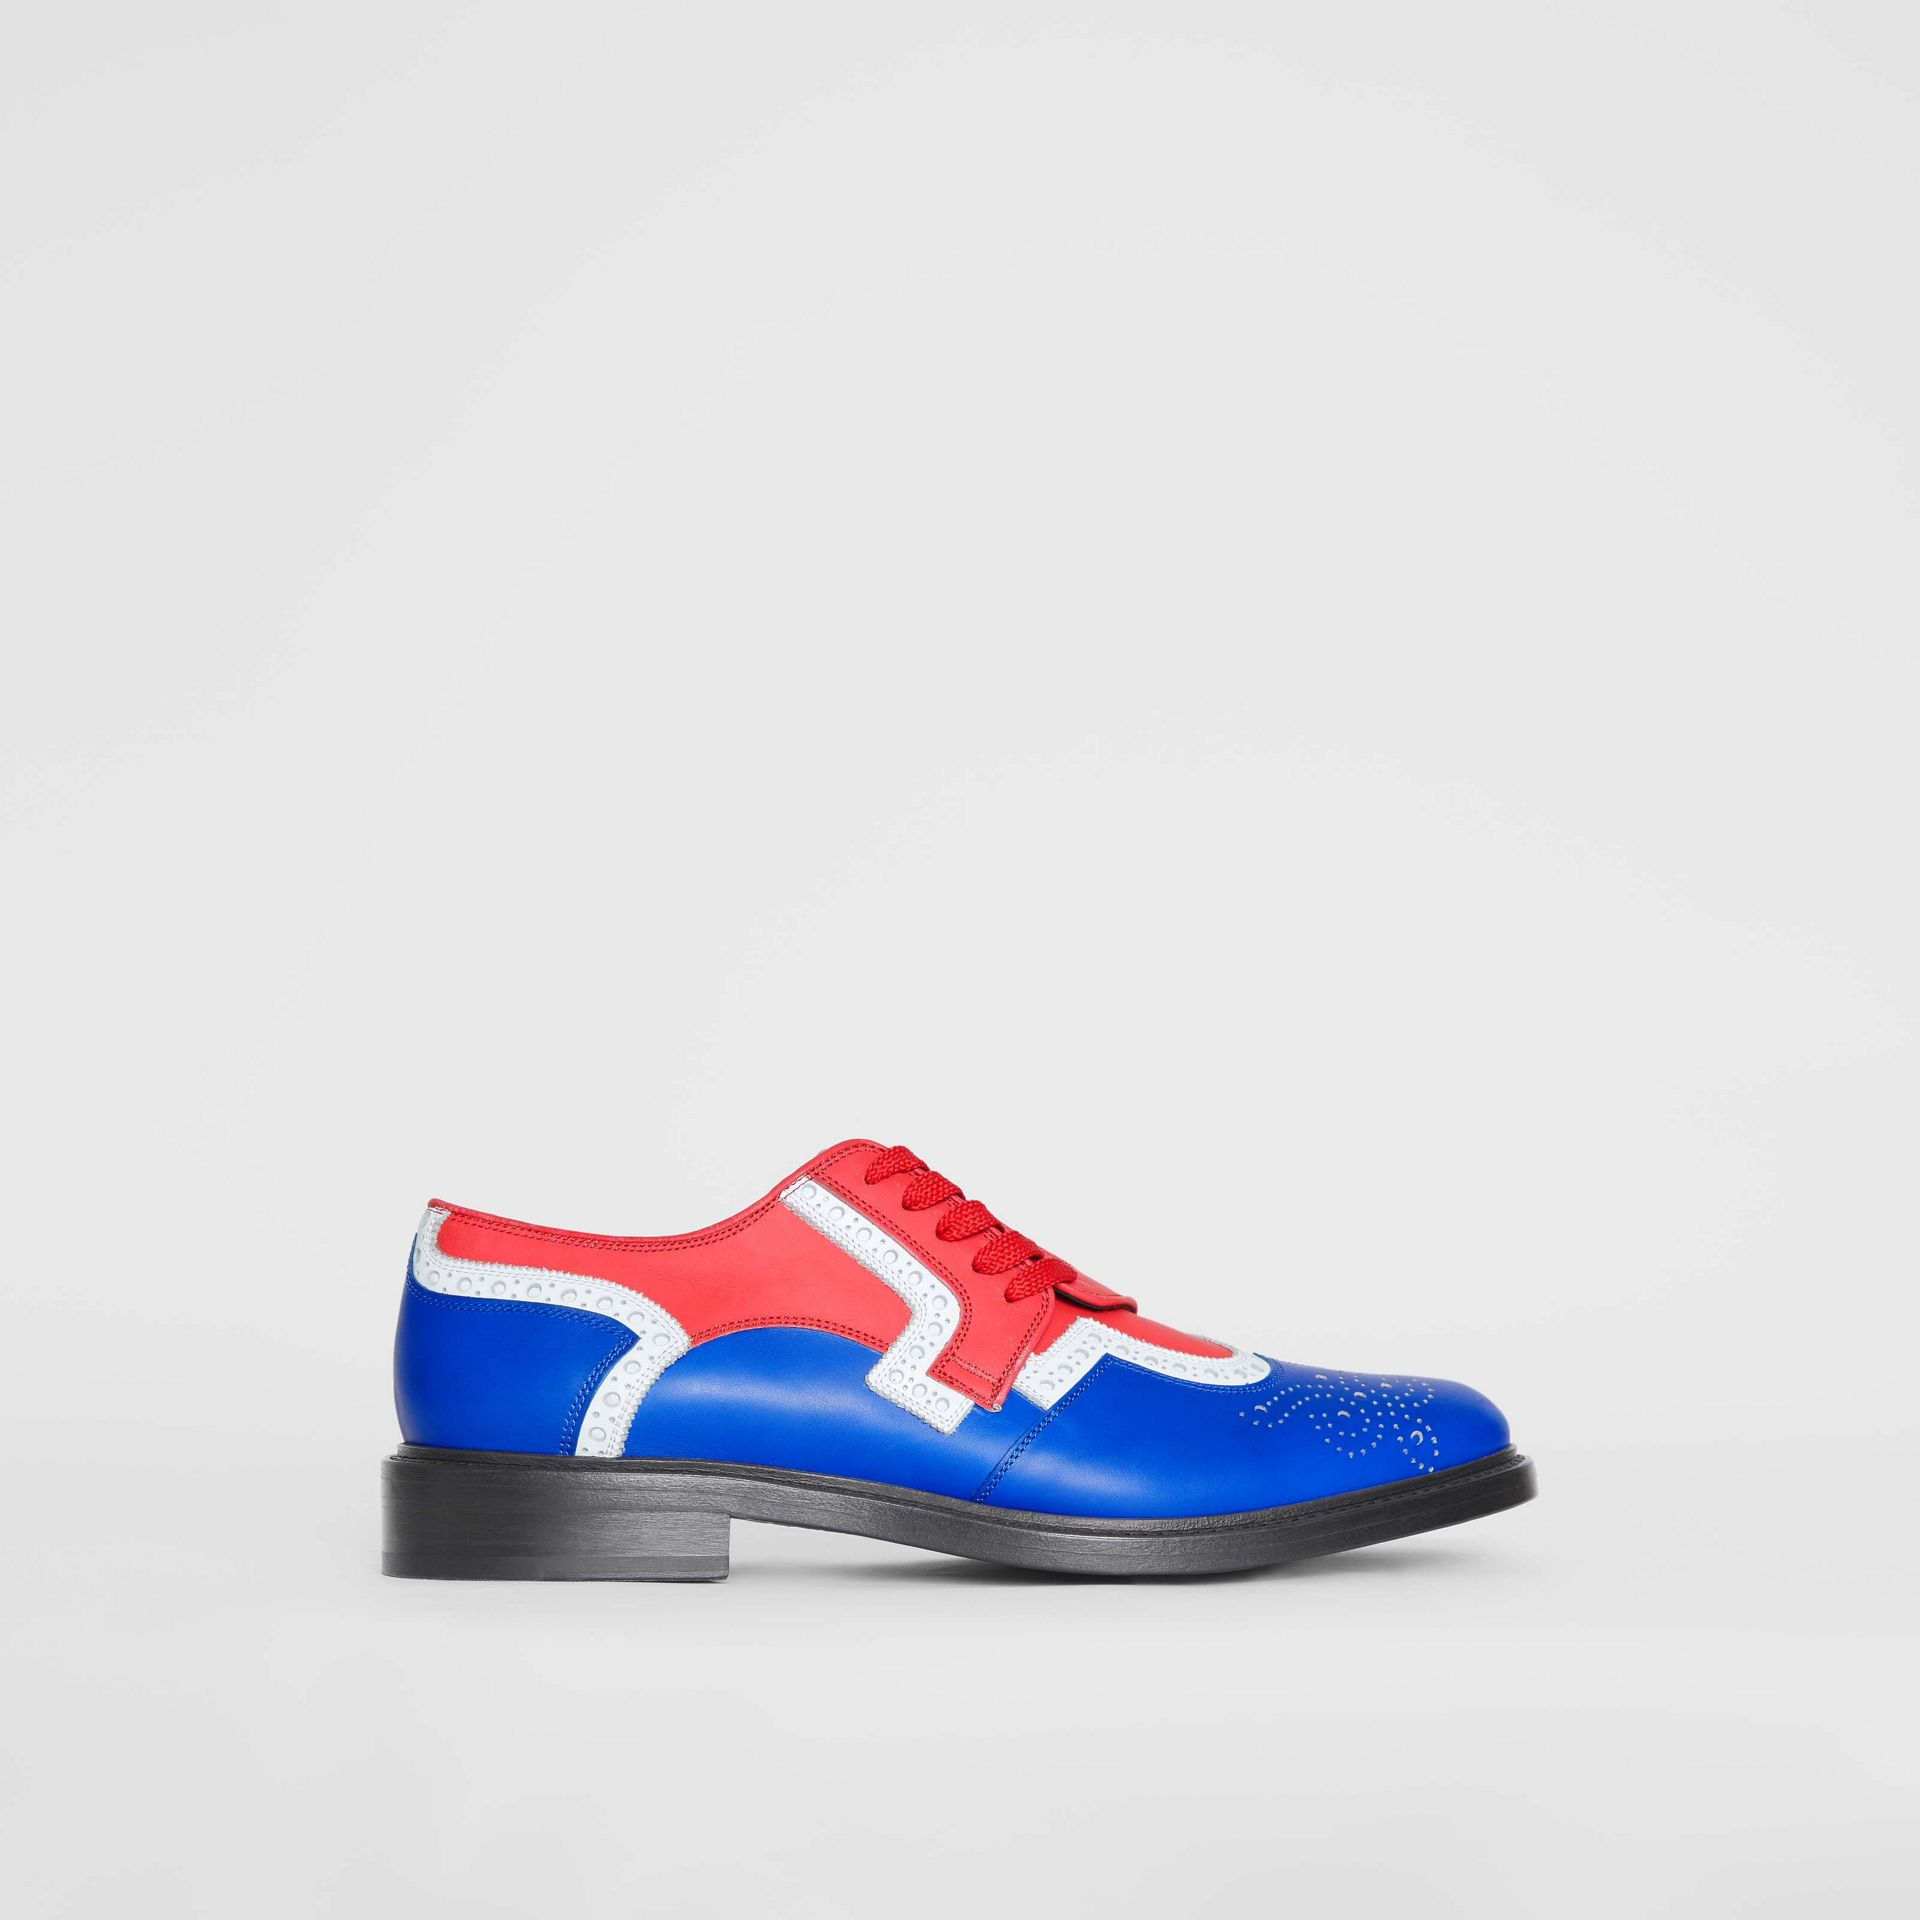 Asymmetric Closure Tri-tone Leather Brogues in Blue/red - Men | Burberry United Kingdom - gallery image 5